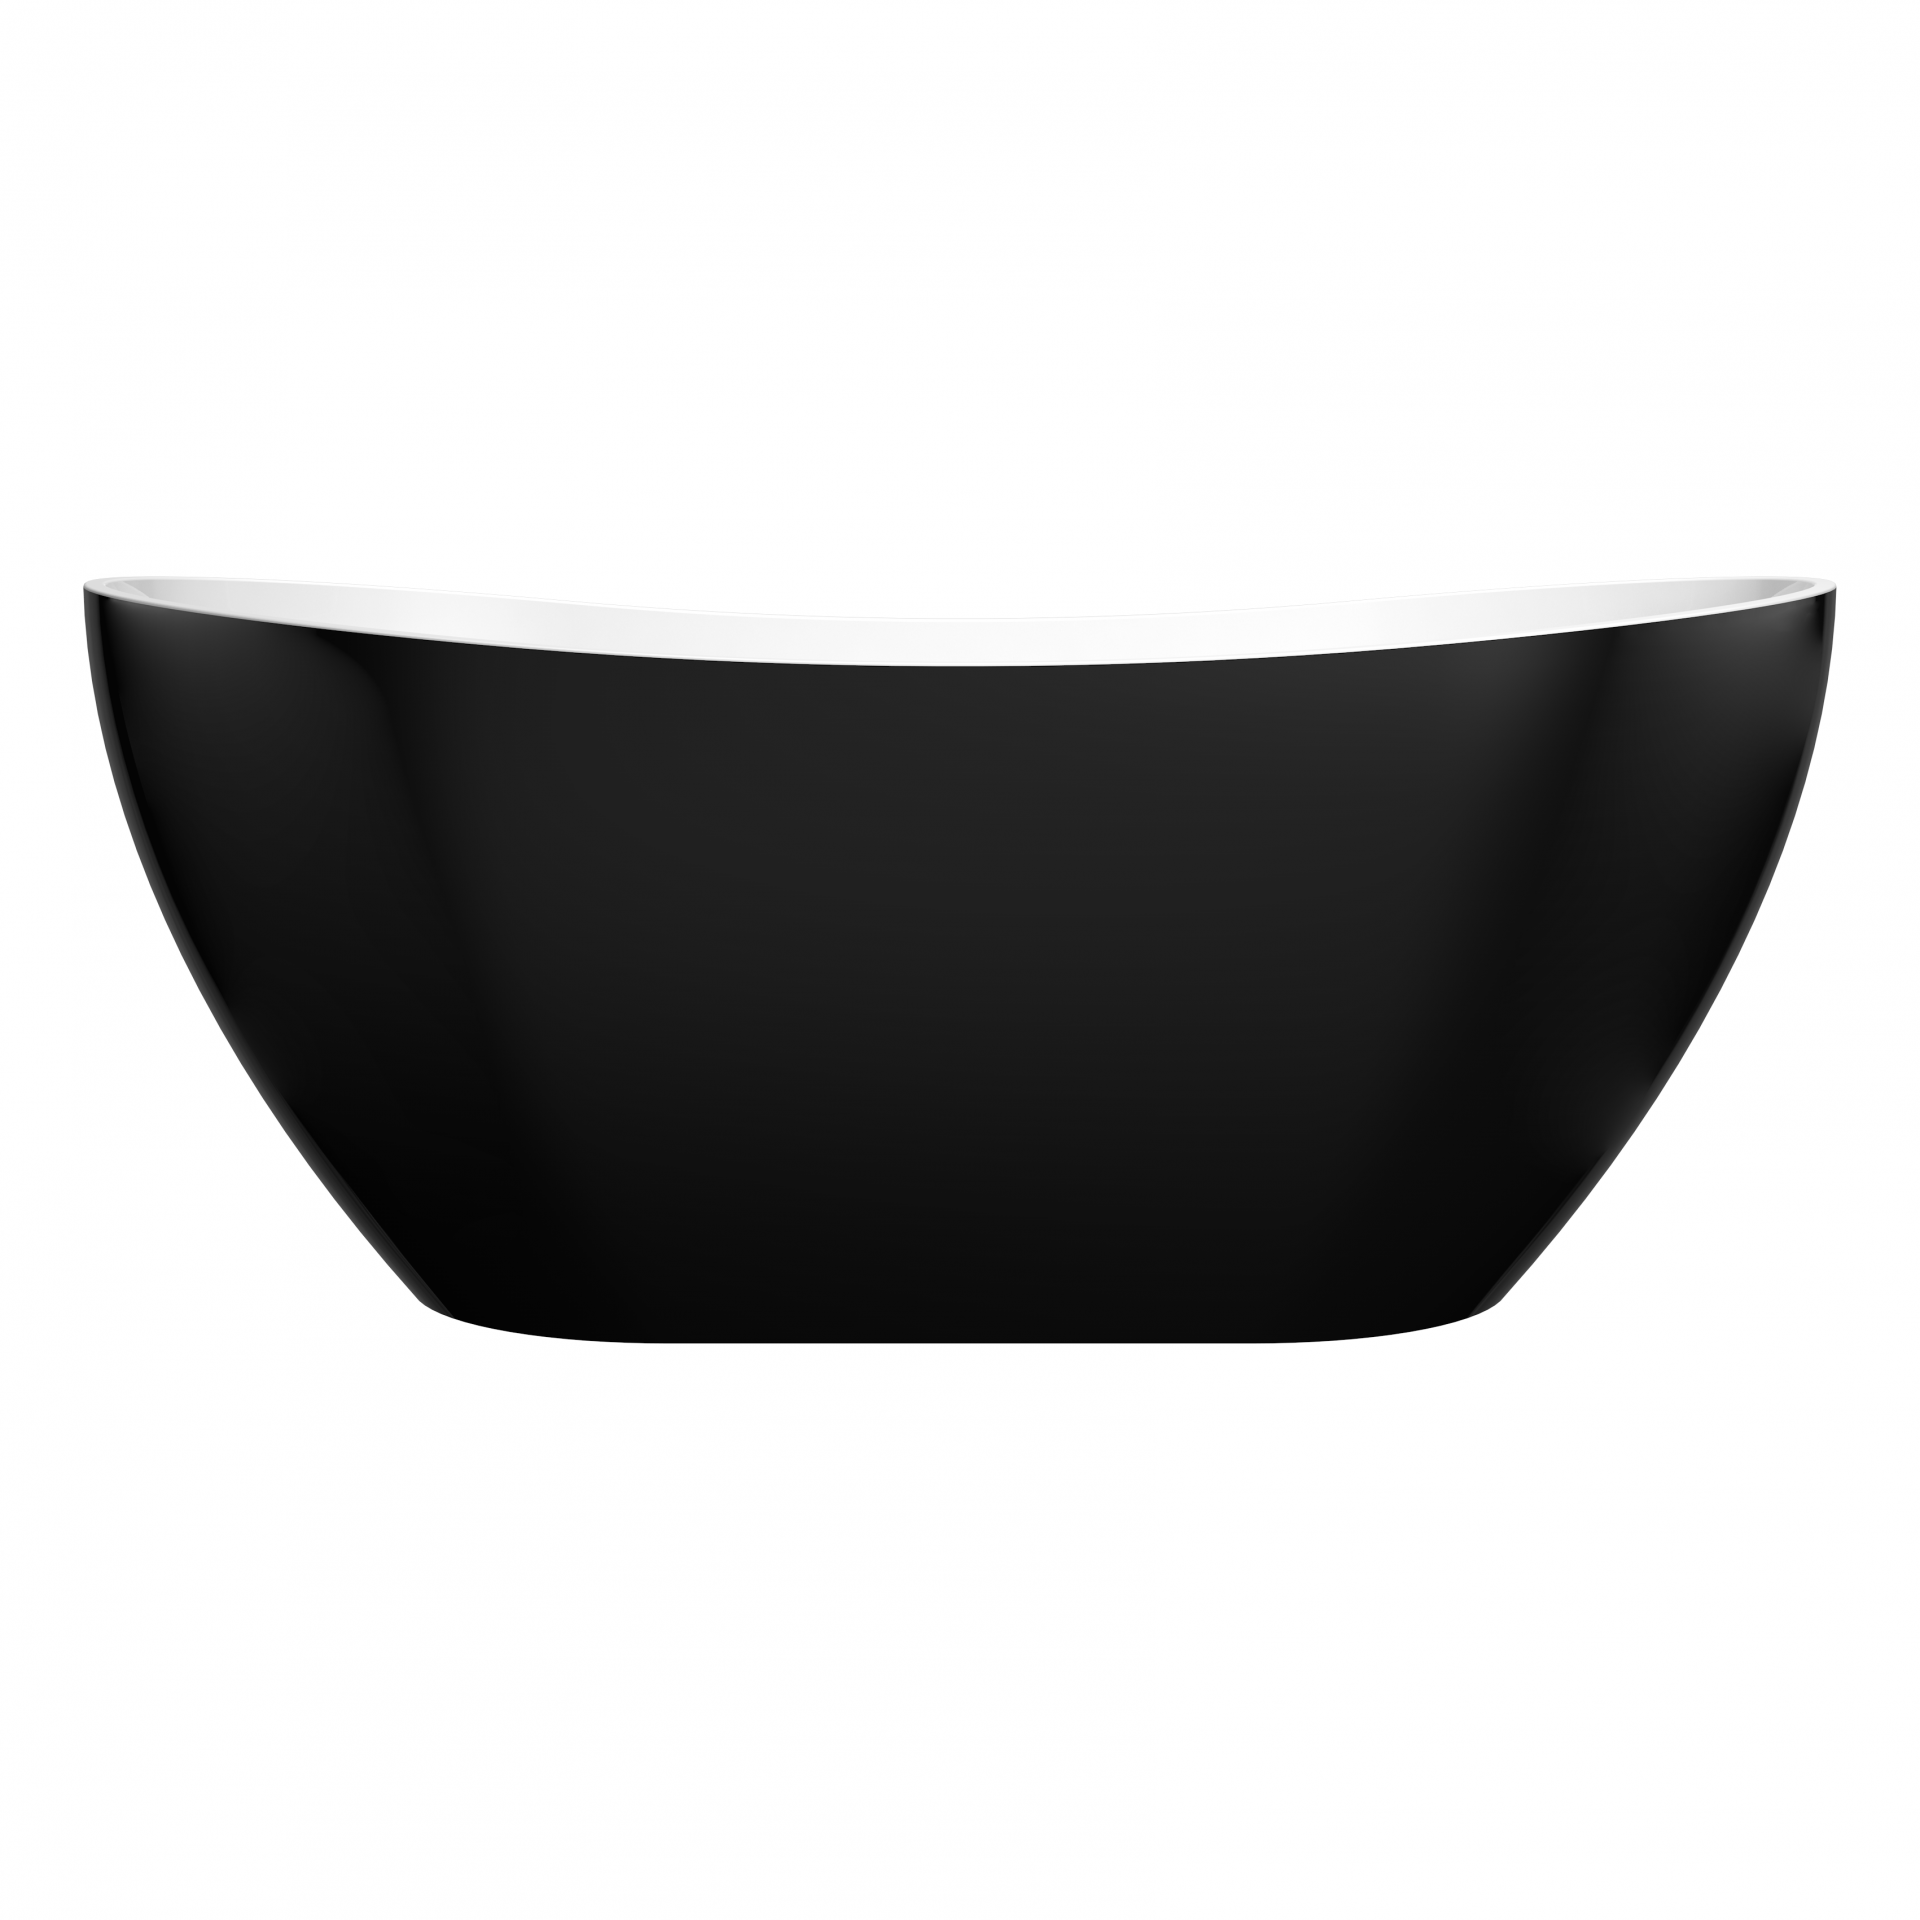 EVIE 1500mm Black Oval Freestanding Bathtub